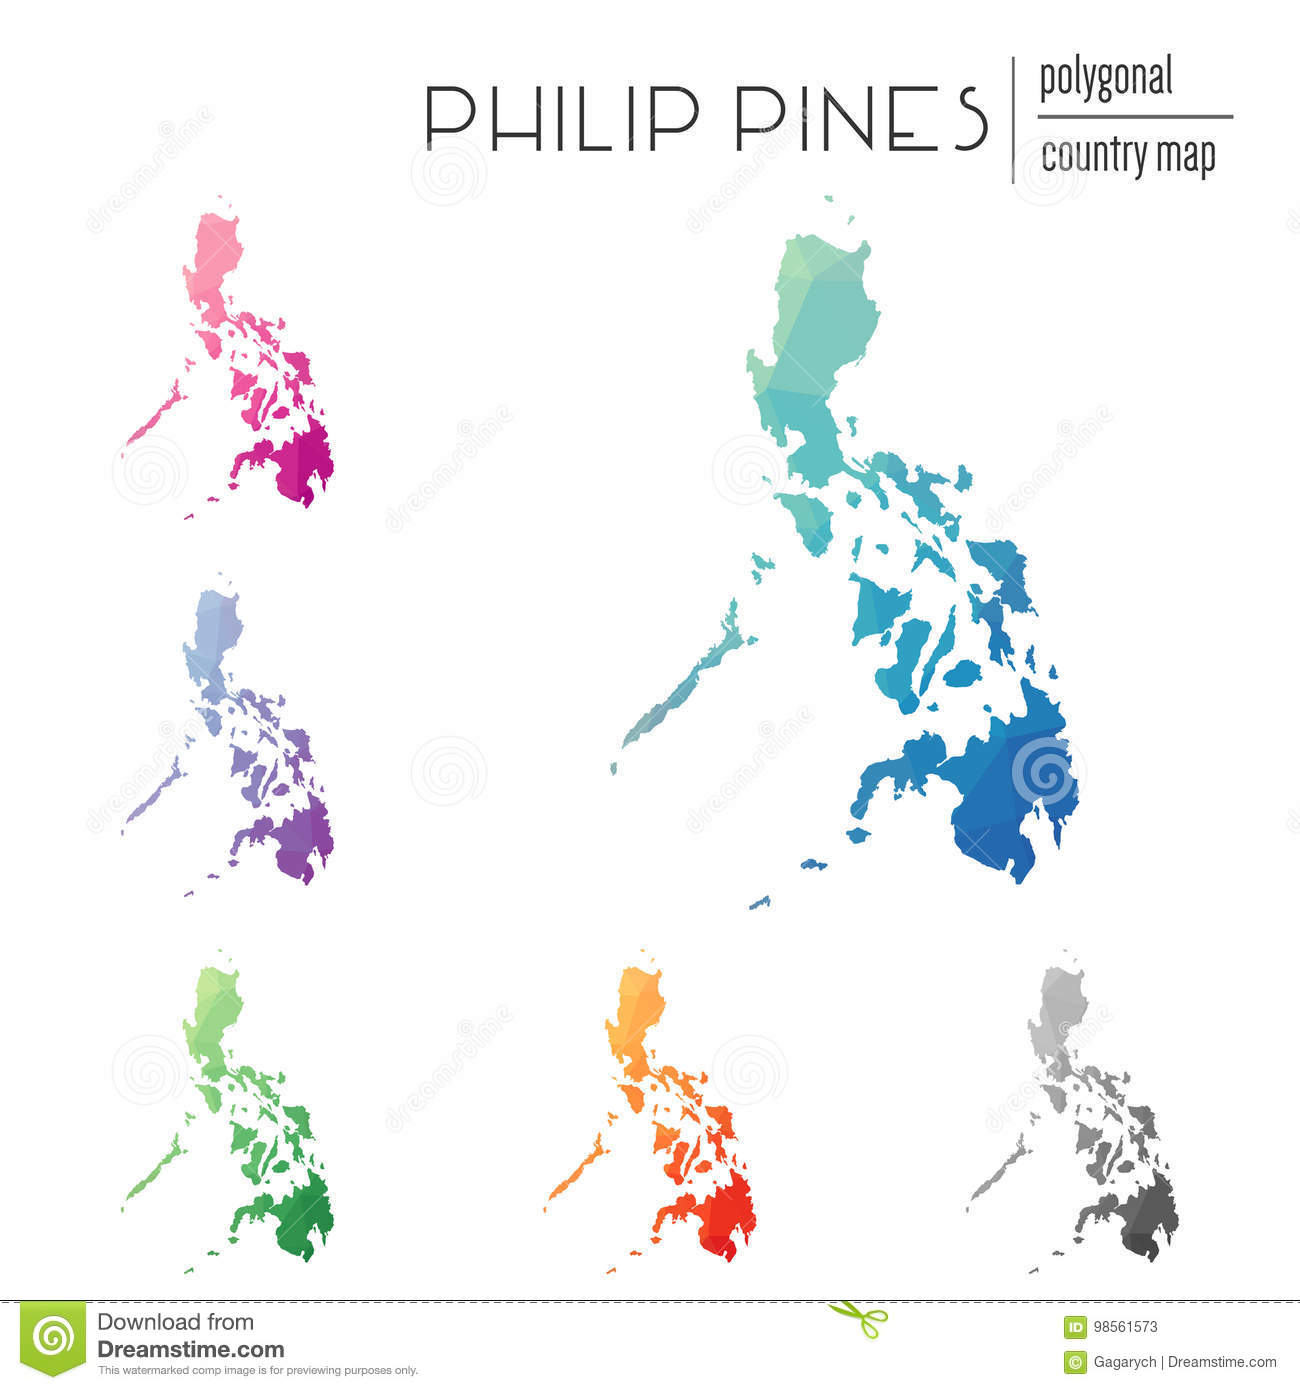 Set Of Vector Polygonal Philippines Maps. Stock Vector ... Philippine Country Map on philippines country information, philippines world map, philippines campaign map, philippines islands, philippines on map, philippines road map, philippines country outline, philippines ocean map, philippines physical features map, philippines country profile, philippines street map, philippines country code, philippines new zealand map, philippines country flag, philippines political map, philippines language map, philippines beaches, san jose antique philippines map, philippines division map, philippines landform map,